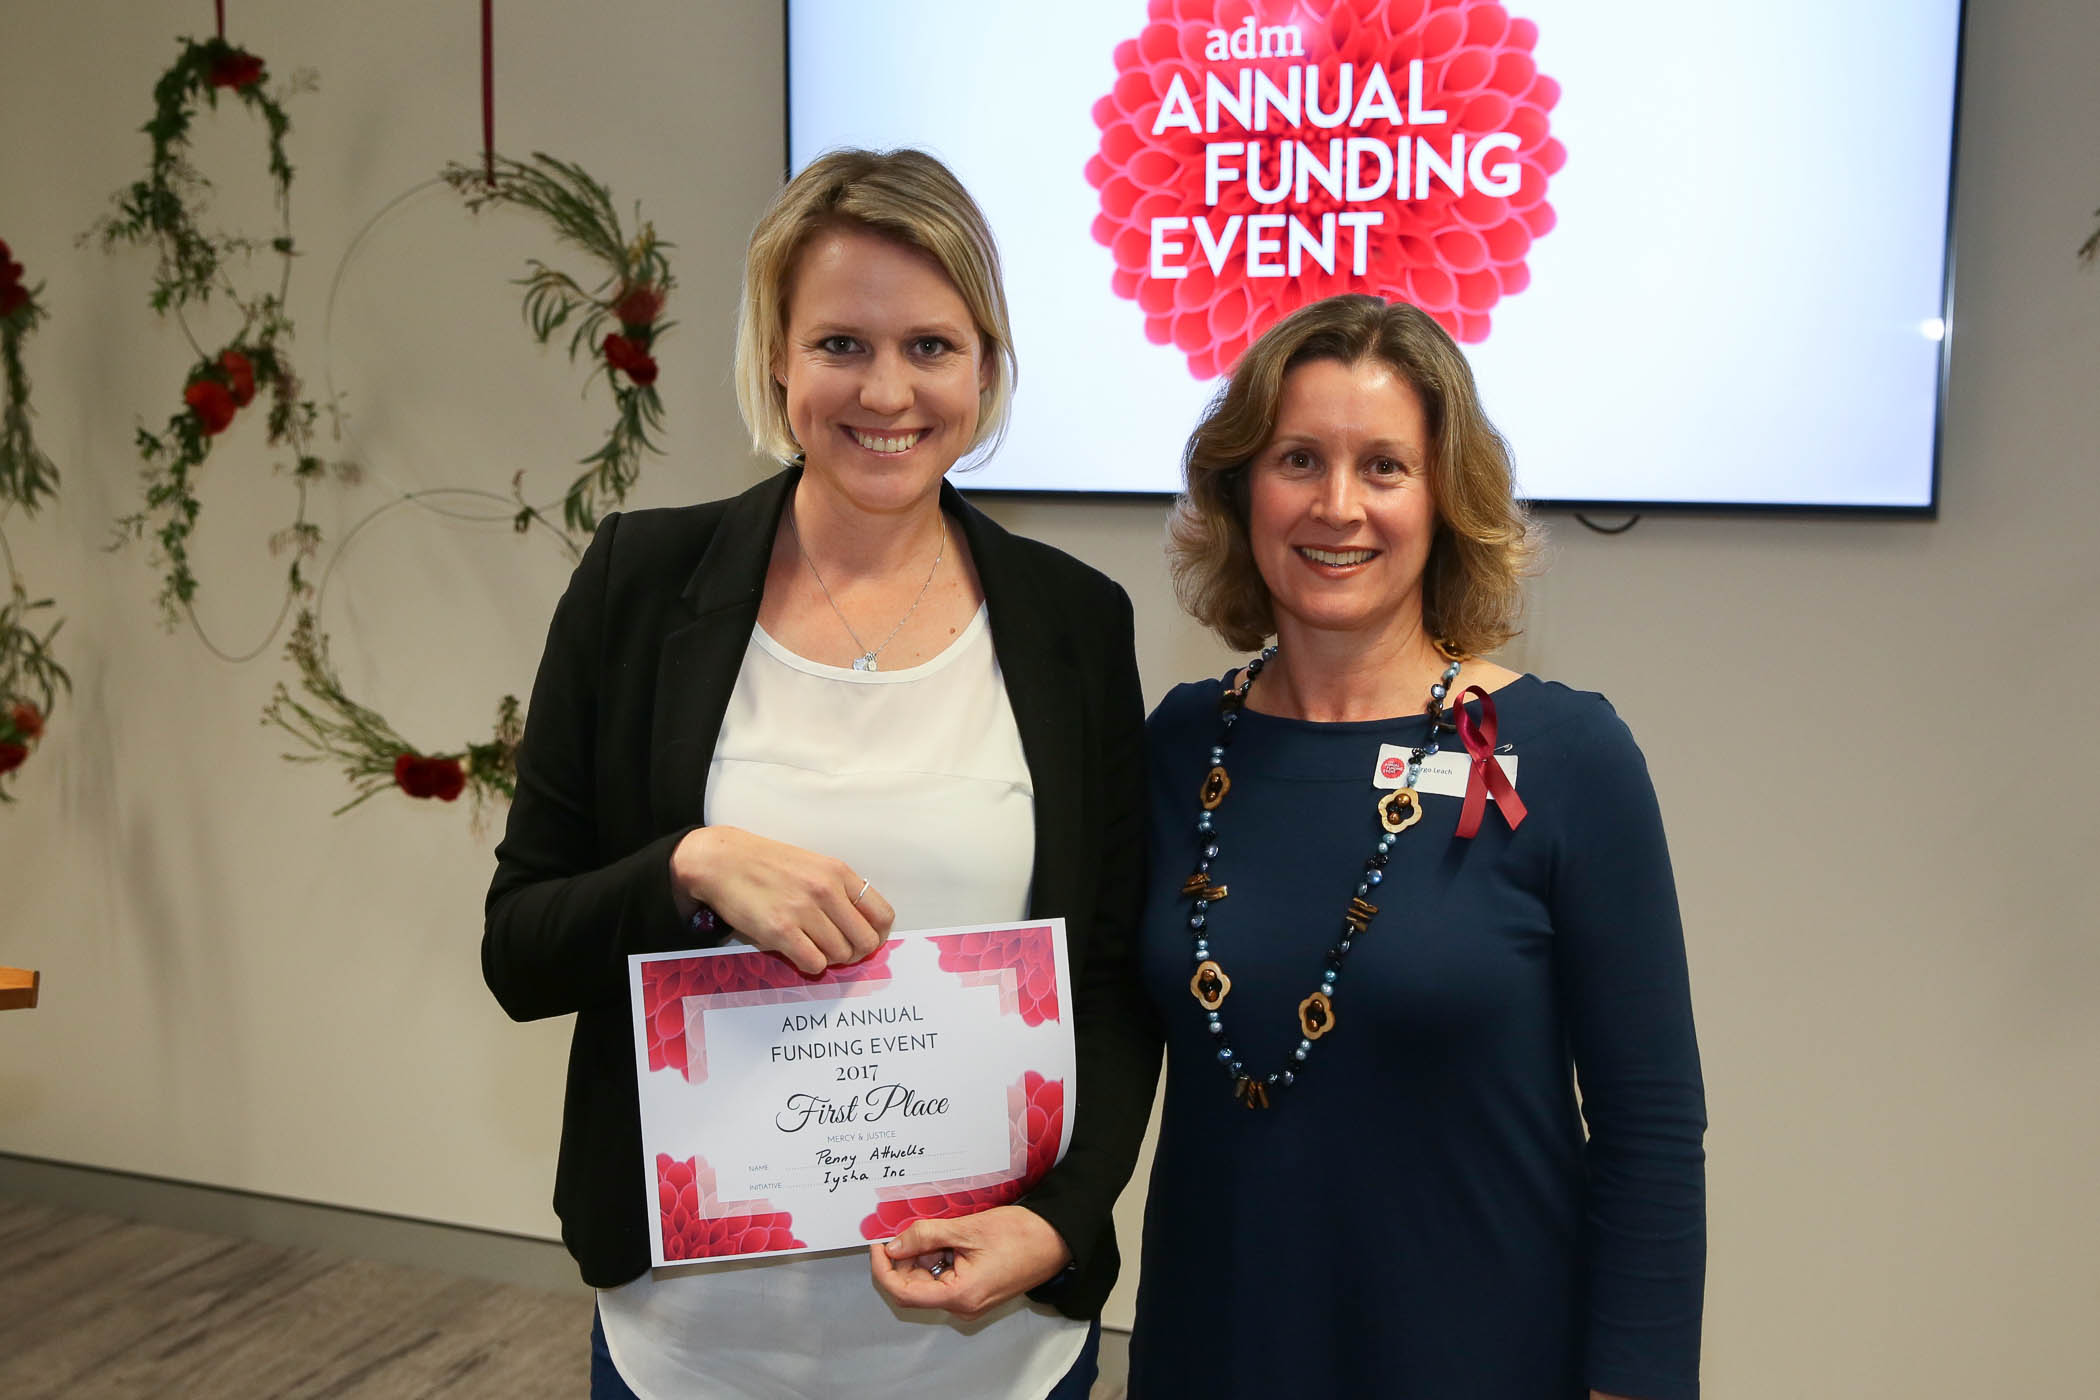 Penny Attwells (left) accepts her award from Margo Leach, ADM's Director of Mercy & Justice Ministries.